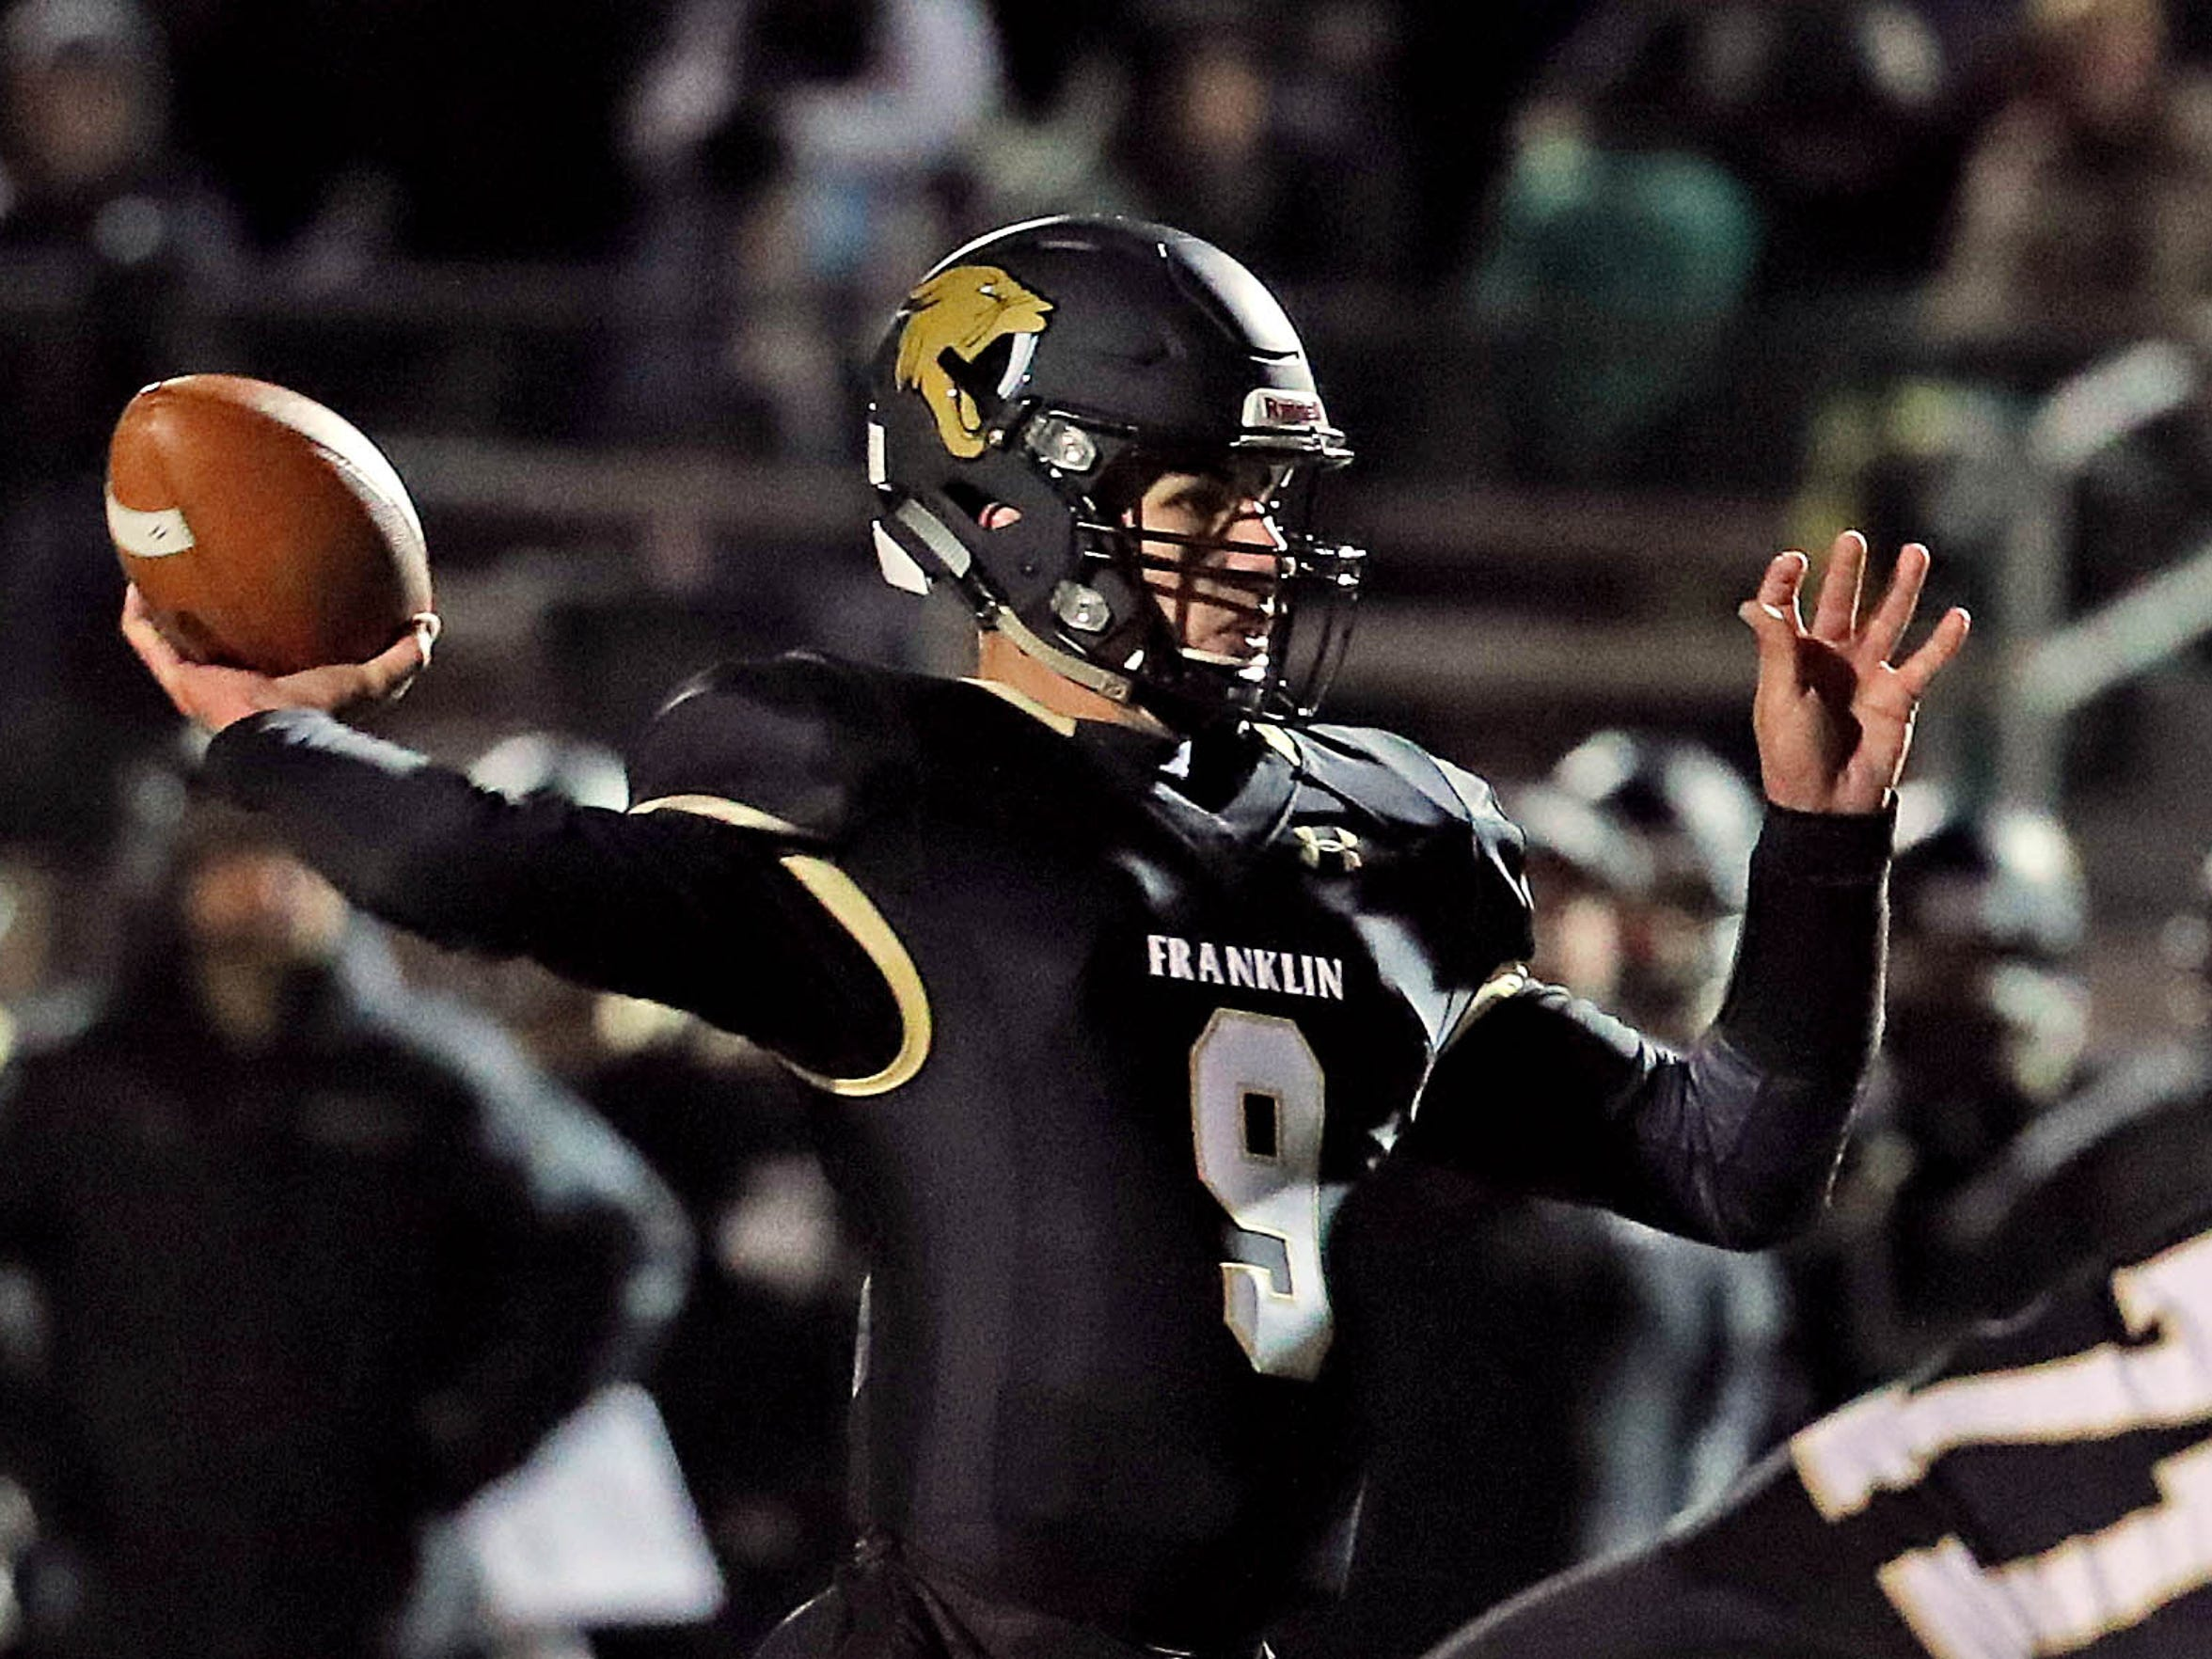 Franklin quarterback Max Alba completes a touchdown pass to Elliot Harris during their playoff game at Franklin on Friday.